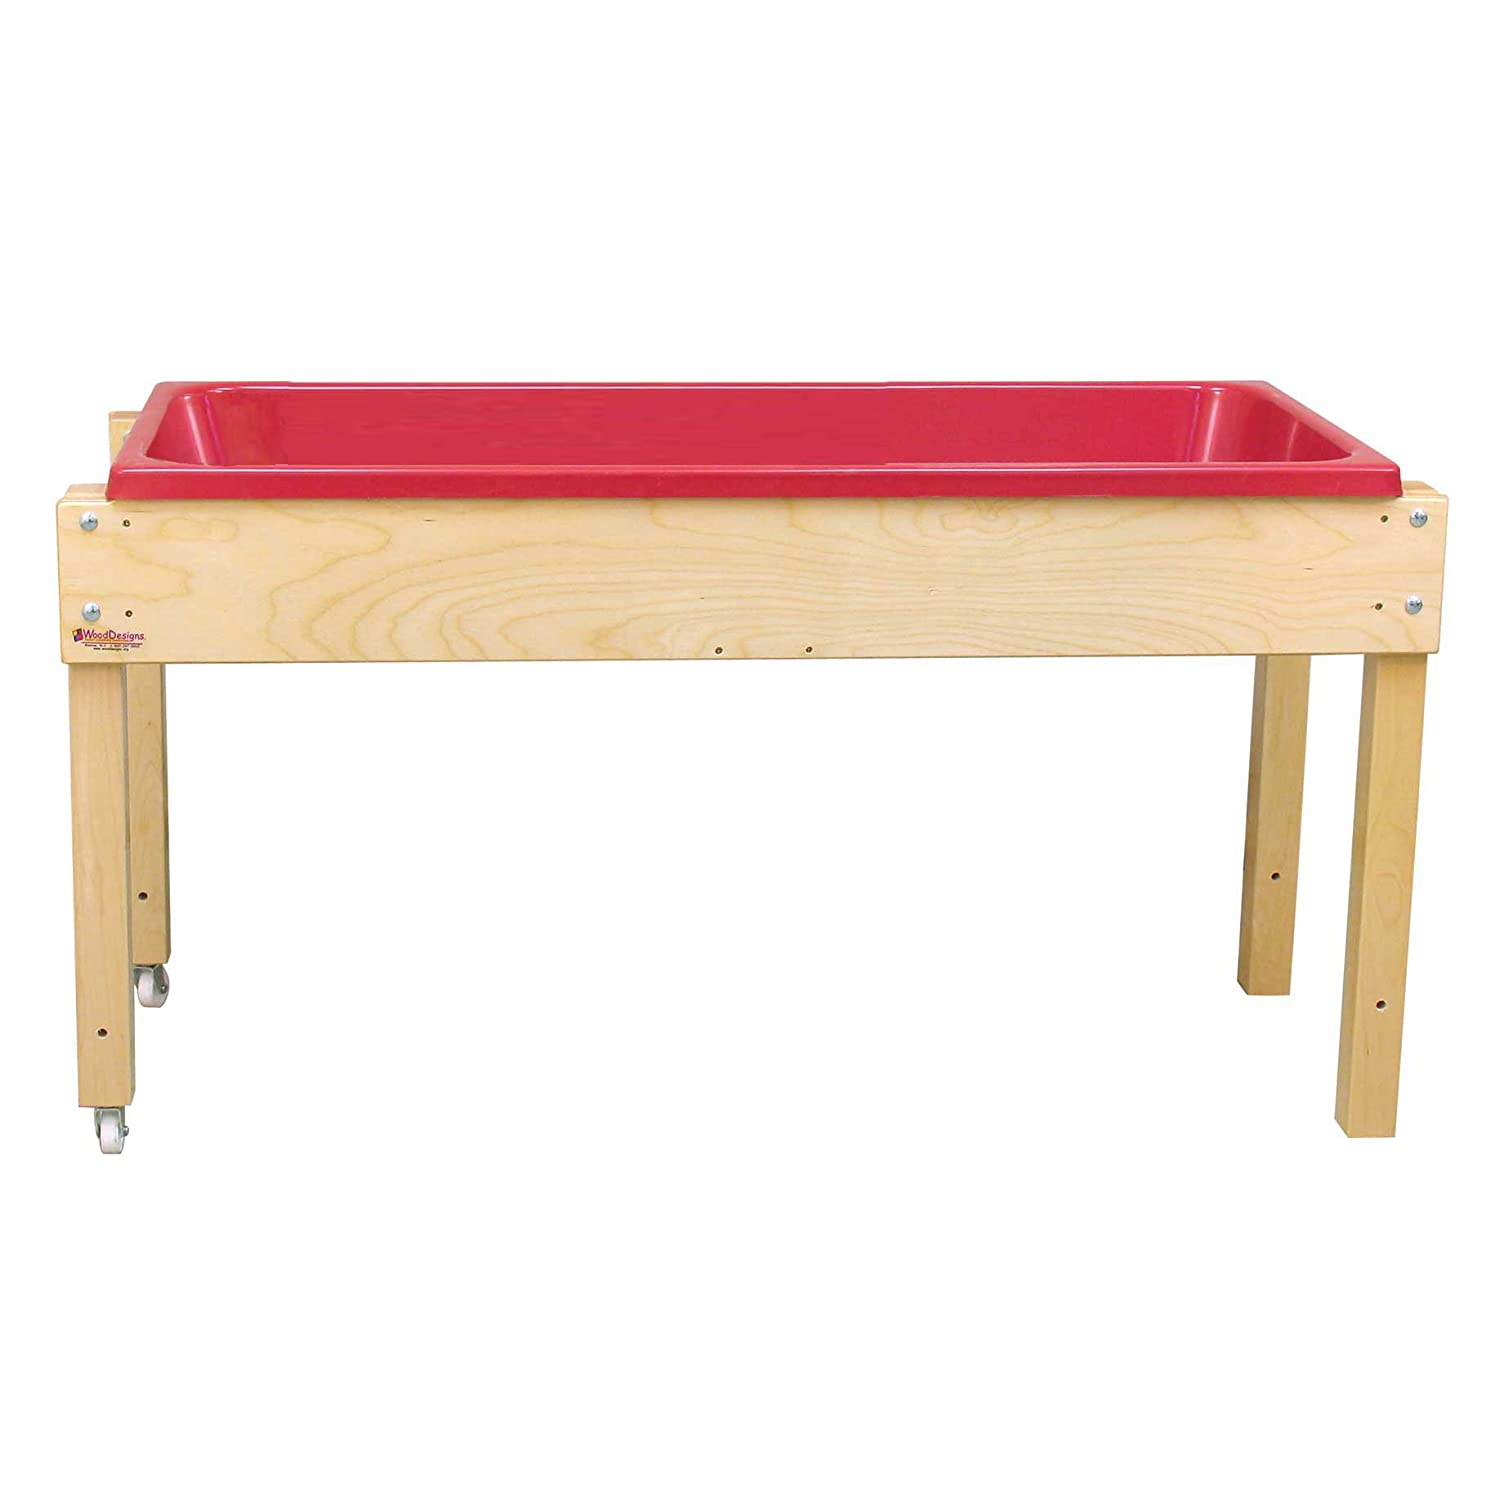 Wood Designs WD11850 Sand and Water Table without Lid, 24 x 46 x 17